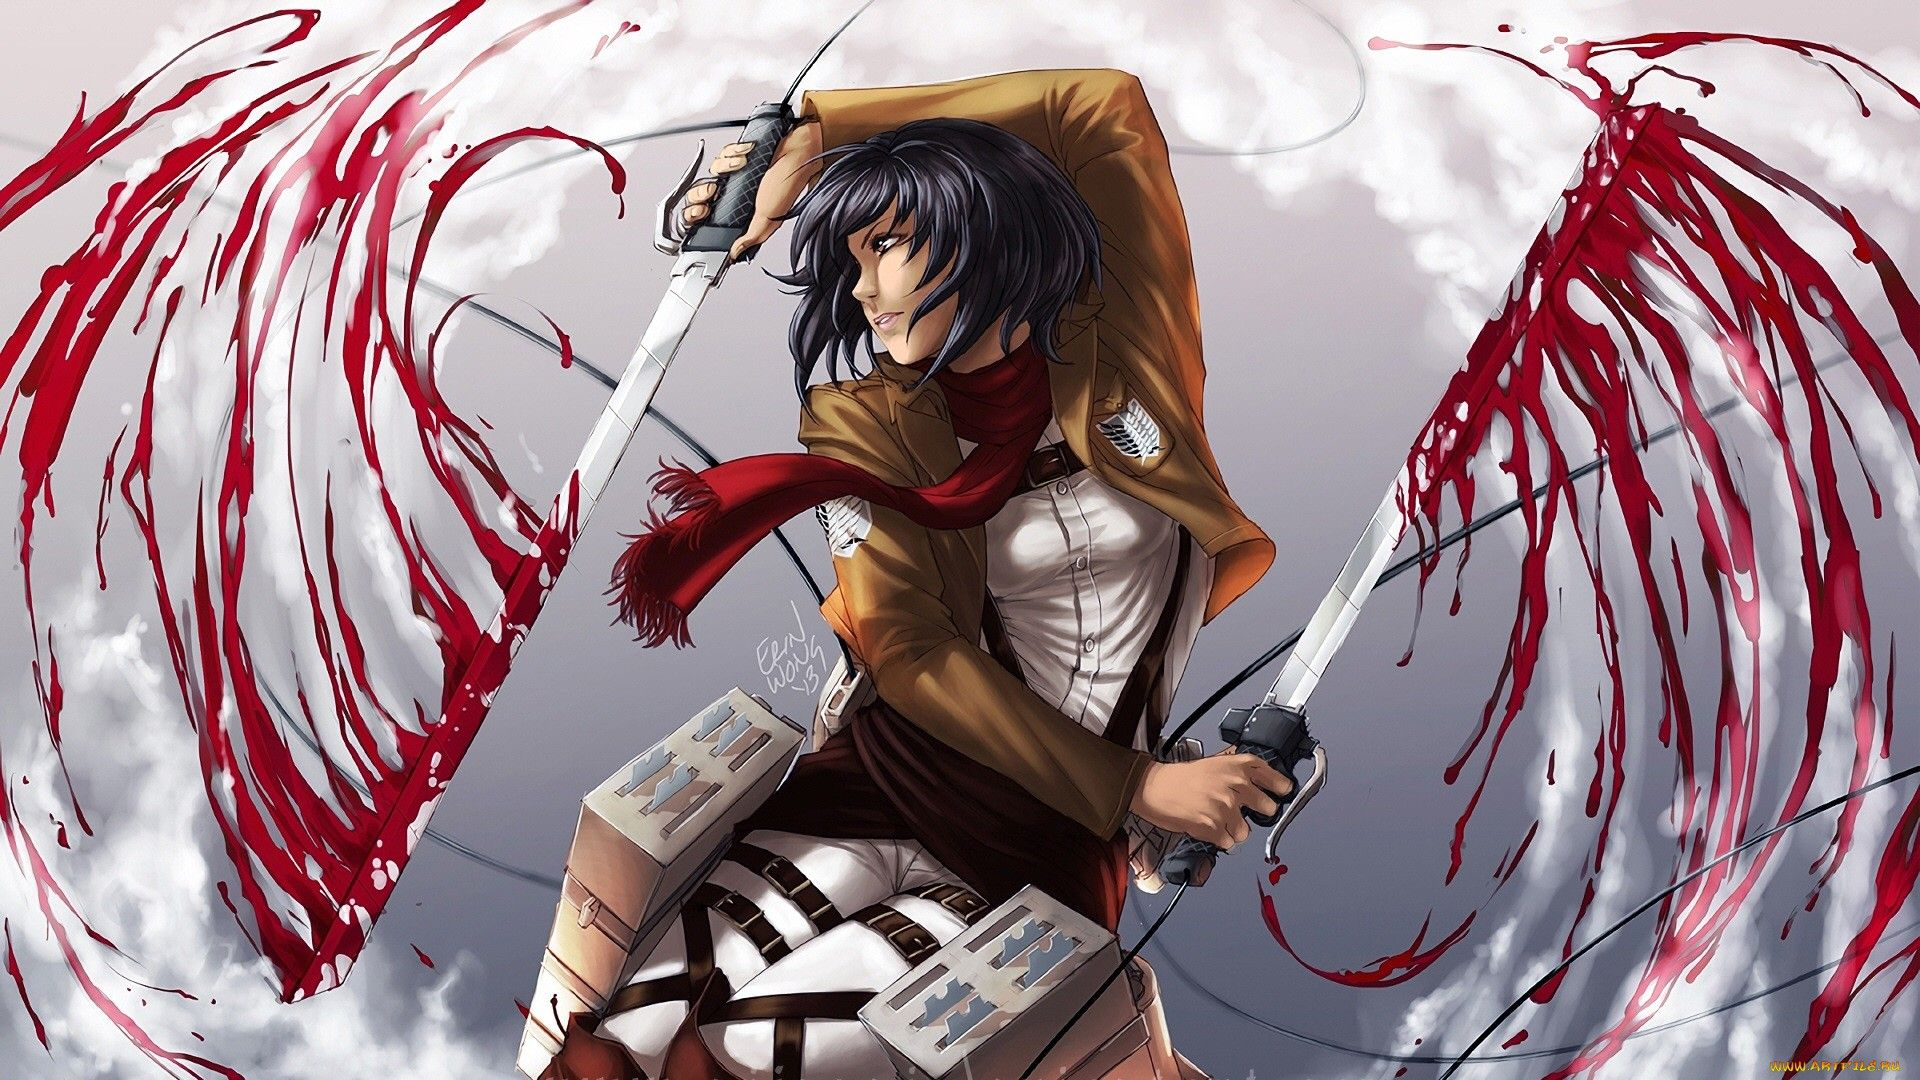 Pictures Anime Attack On Titan